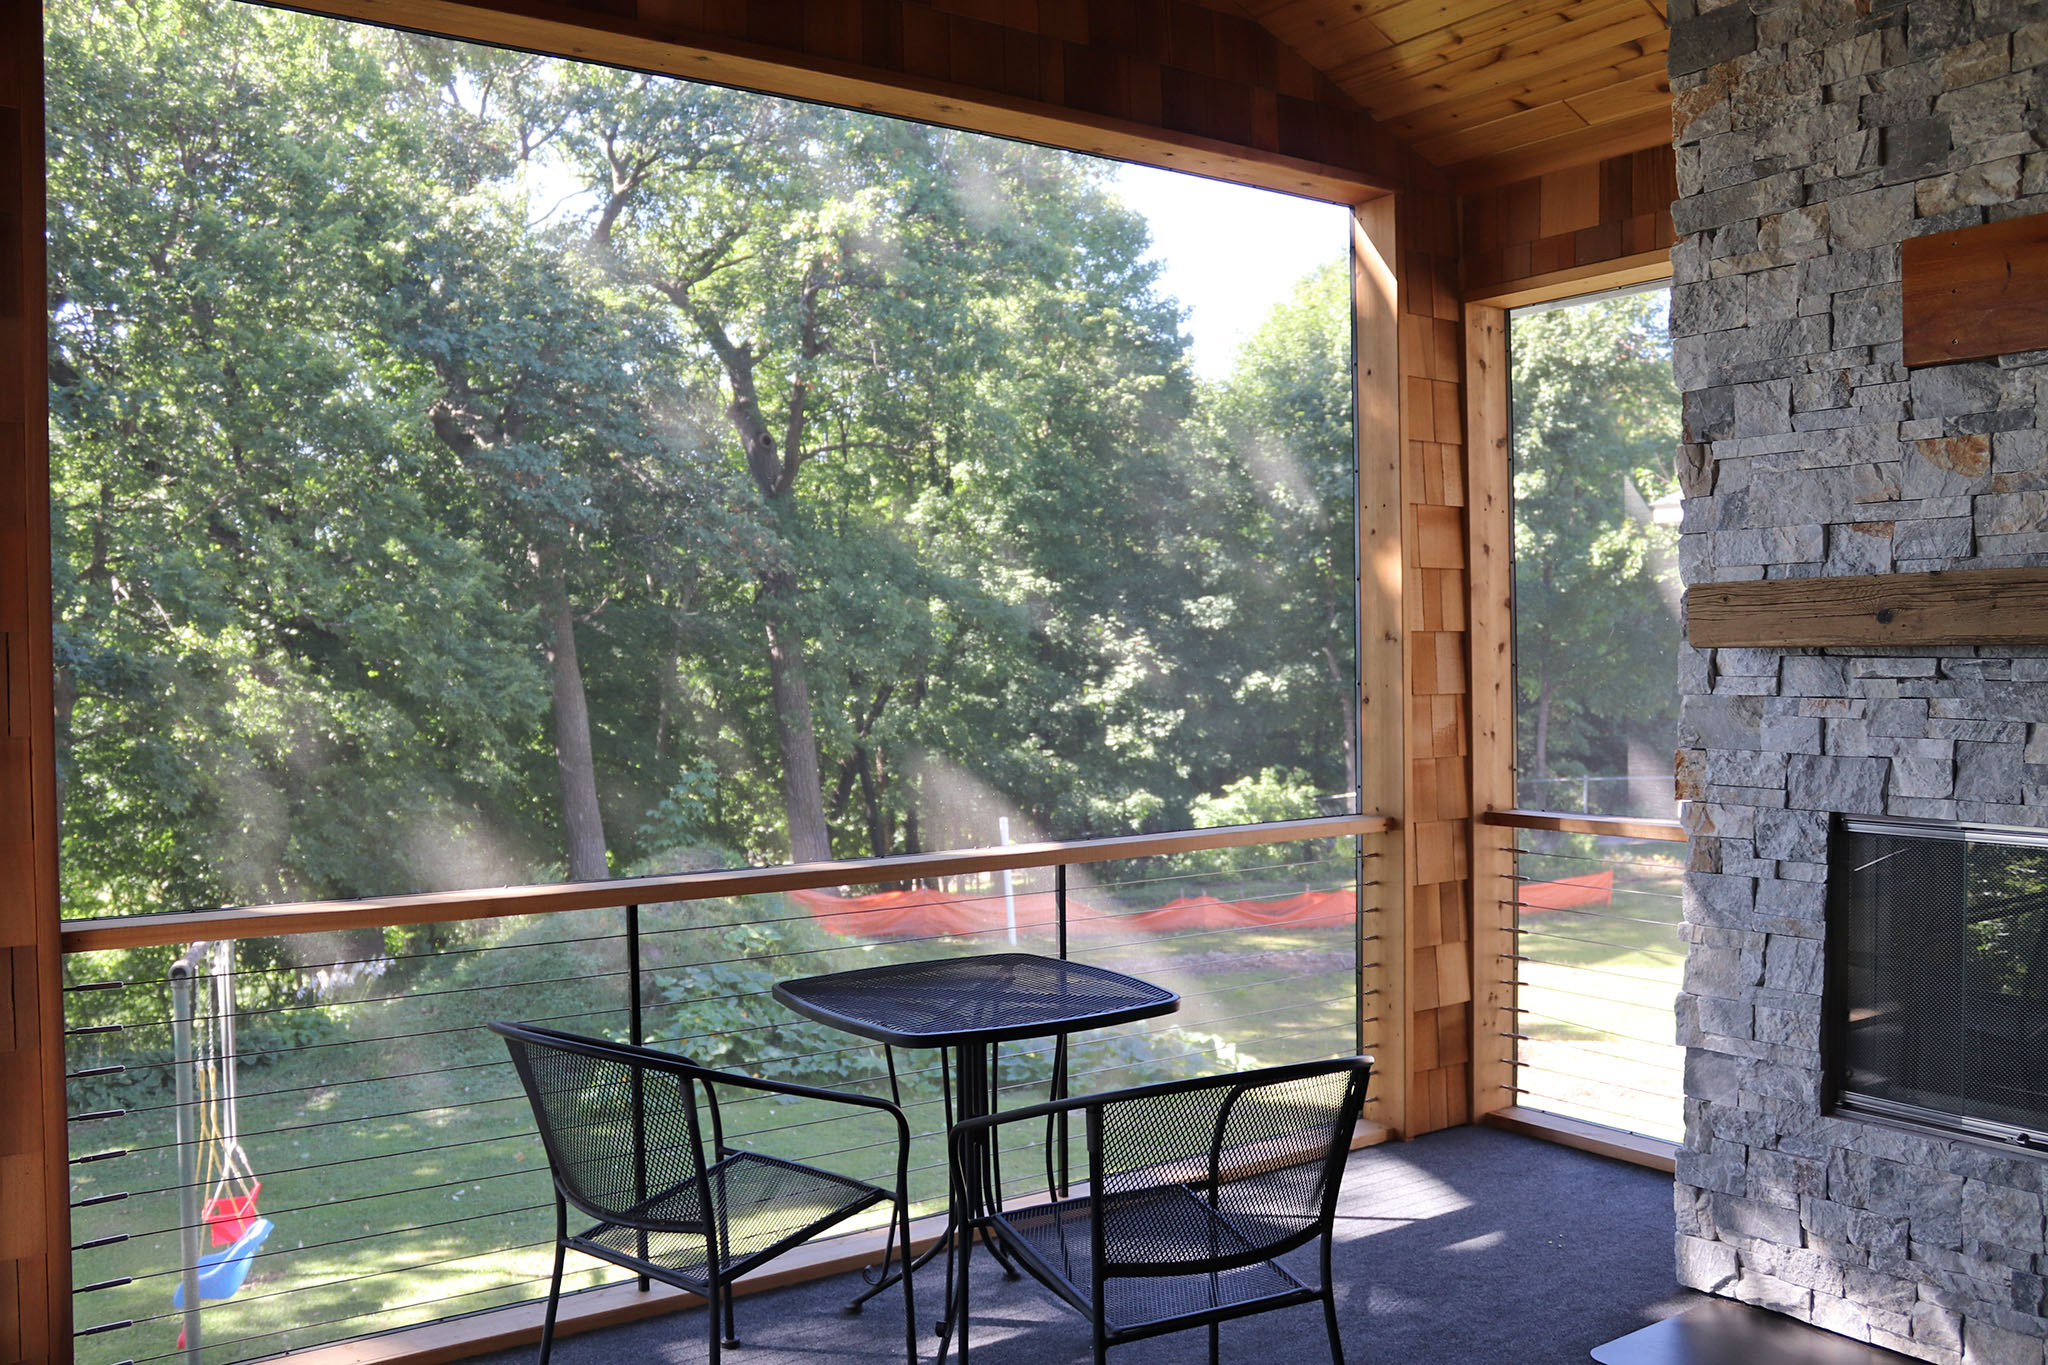 Screen porch with horizontal cable rail system, cedar lap siding, tongue and groove wood ceiling, stone fireplace